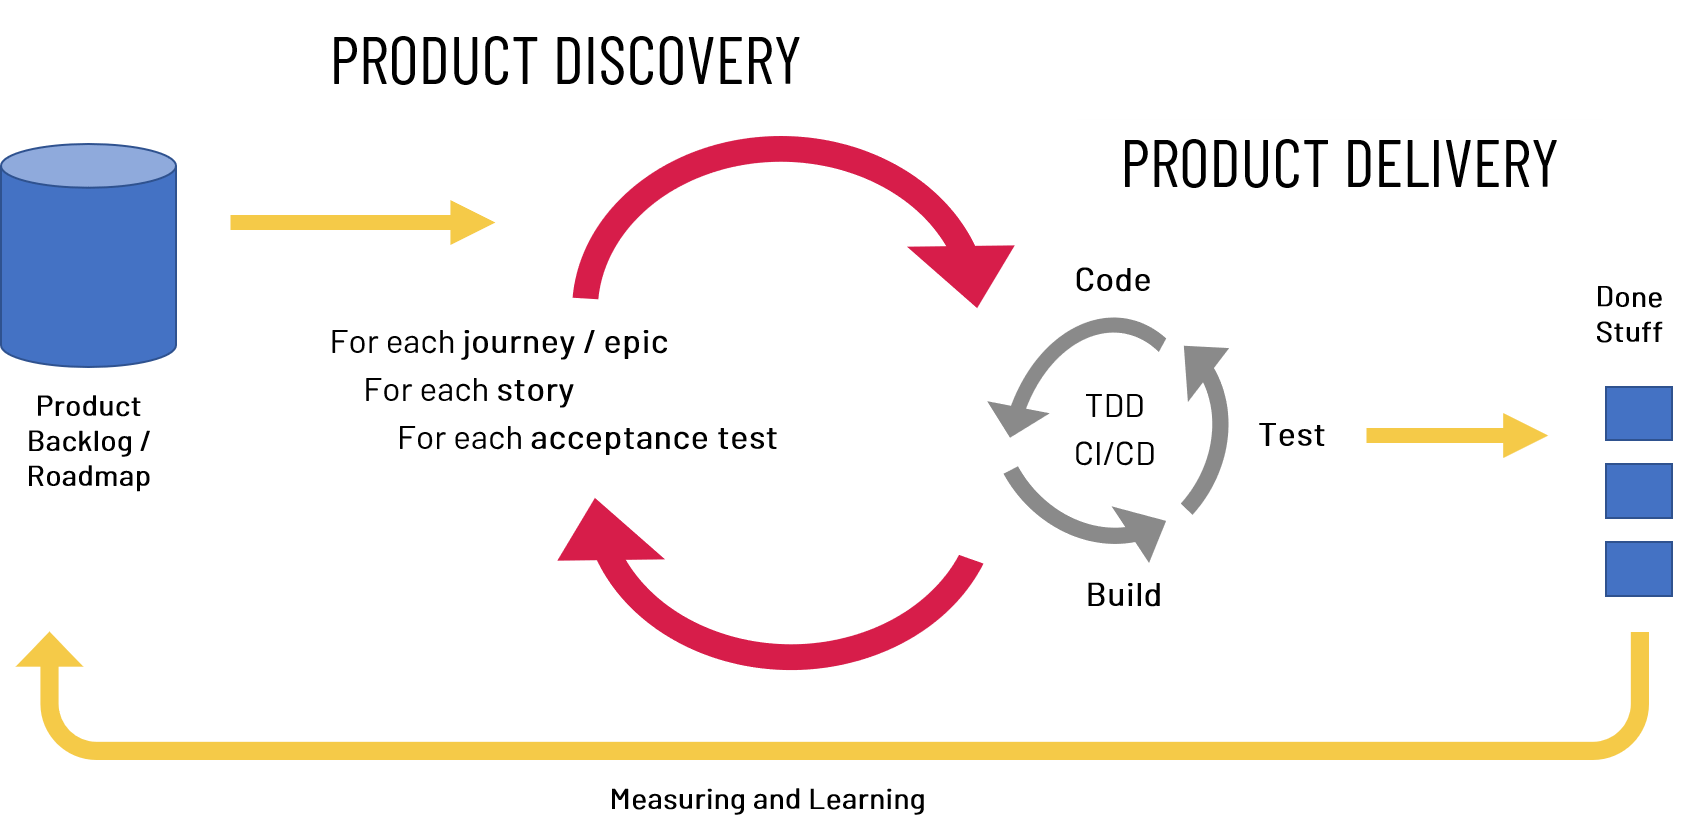 Product Discovery to Product Delivery